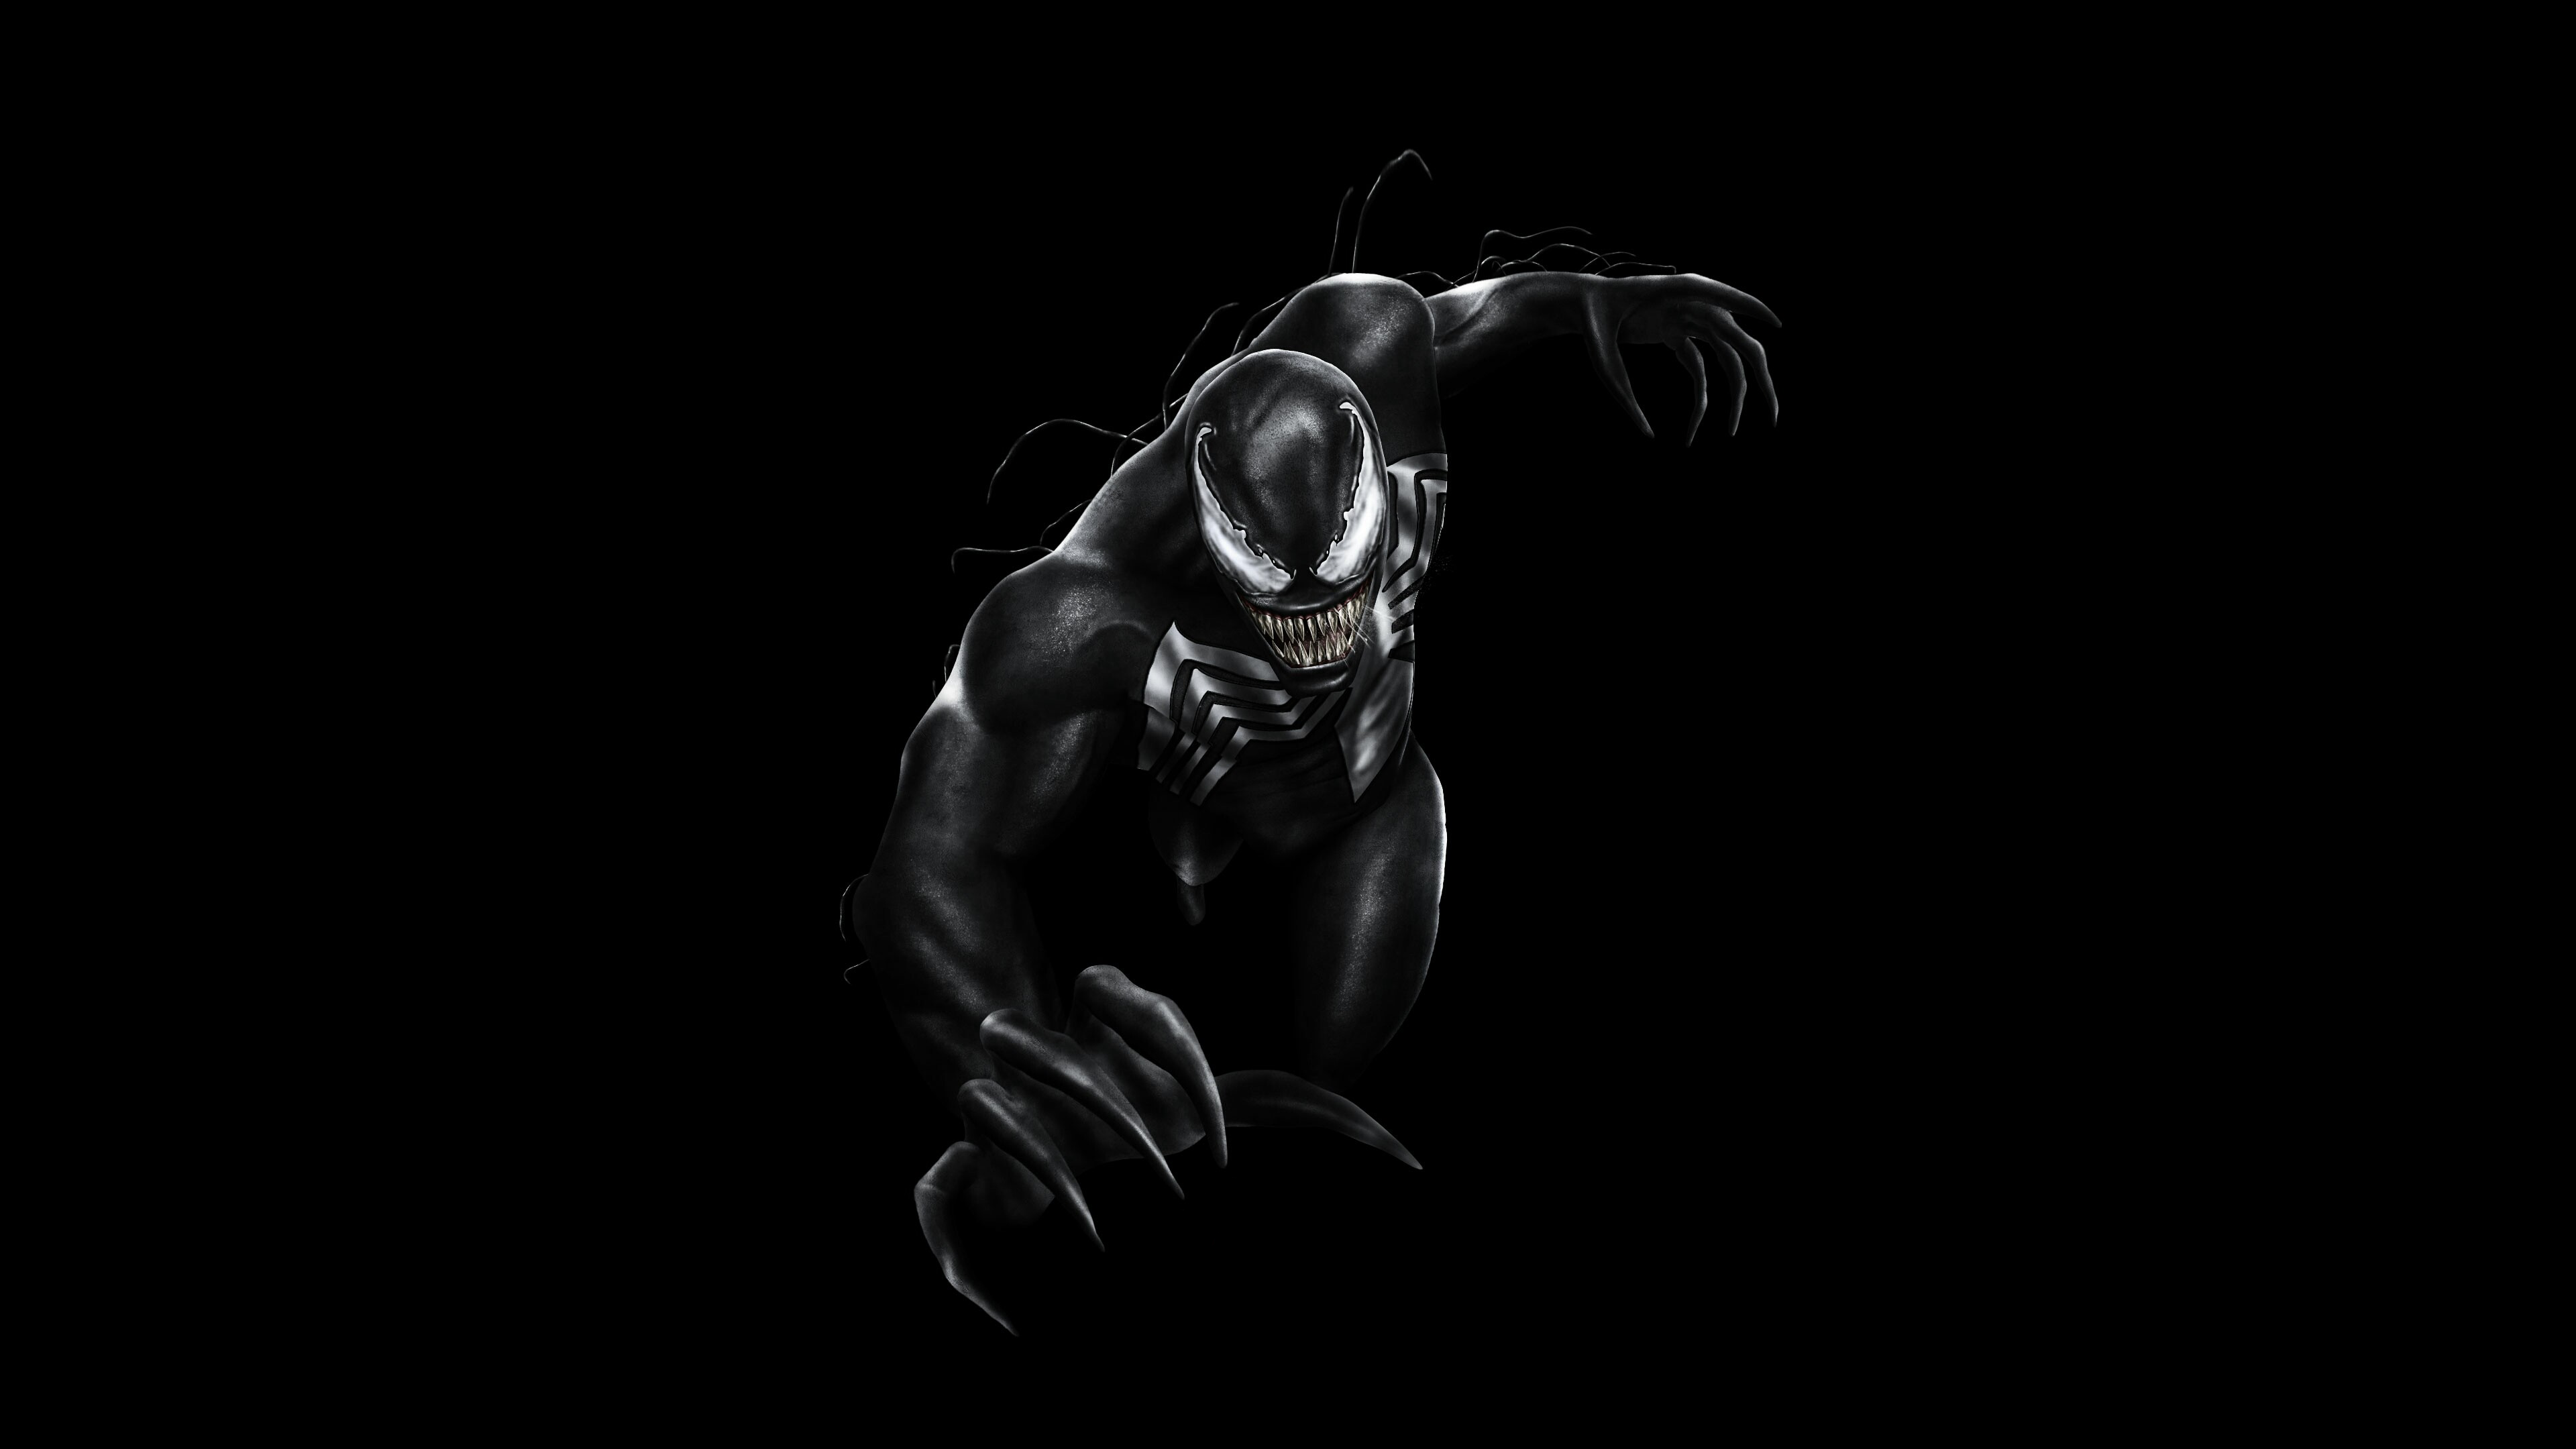 5101381 #Black, #Venom, #4K, #Dark background PNG 872 kb.